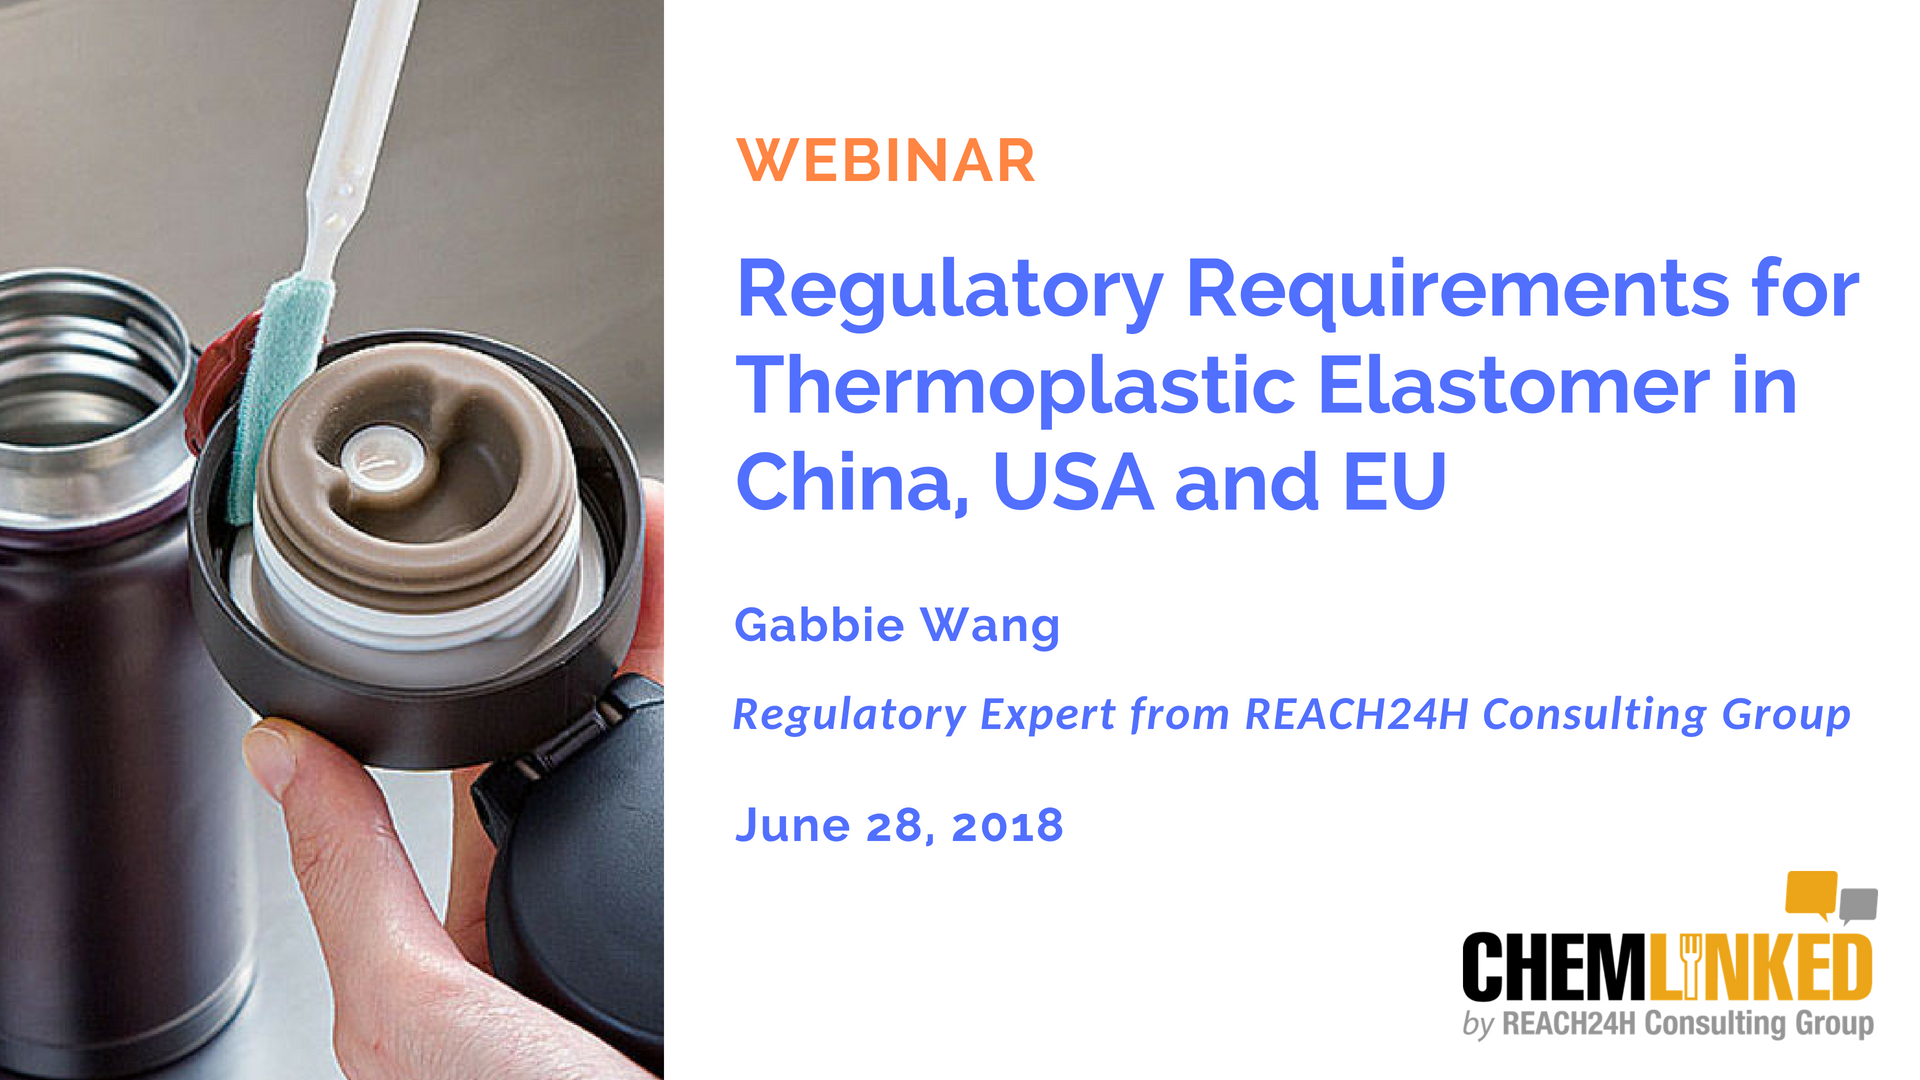 Regulatory Requirements for Thermoplastic Elastomer in China, USA and EU